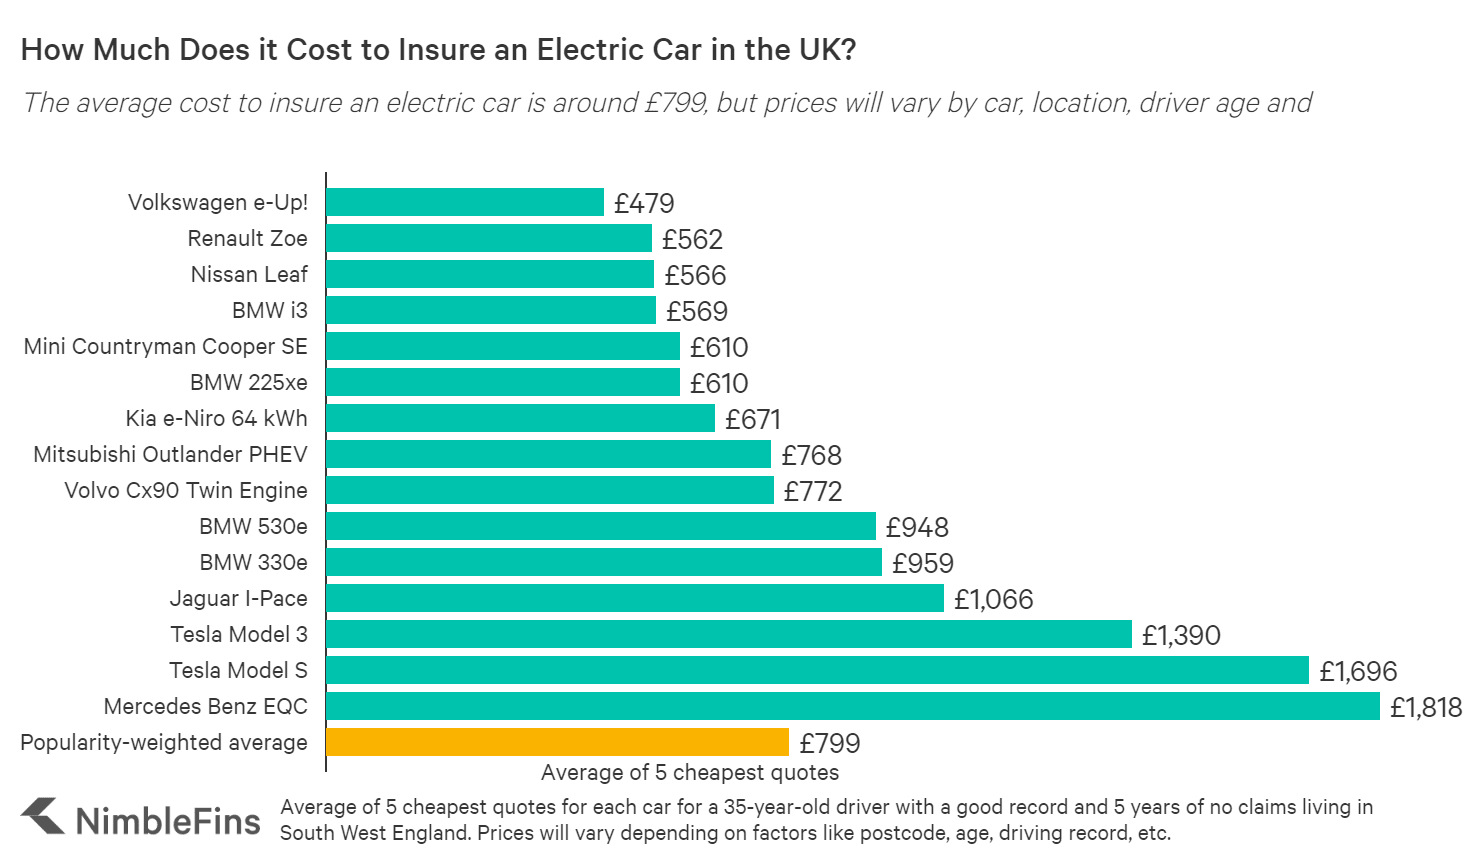 Chart showing the cost of electric car insurance in the UK